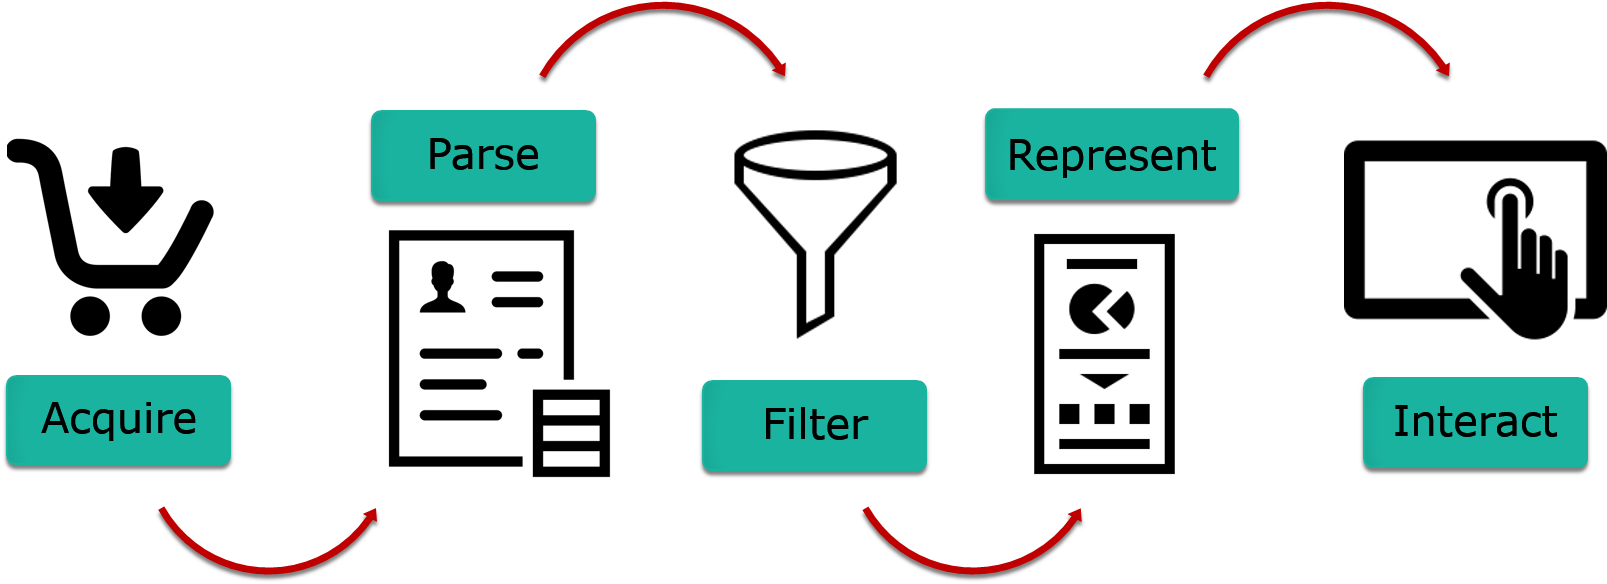 Process flow from Acquire to interact